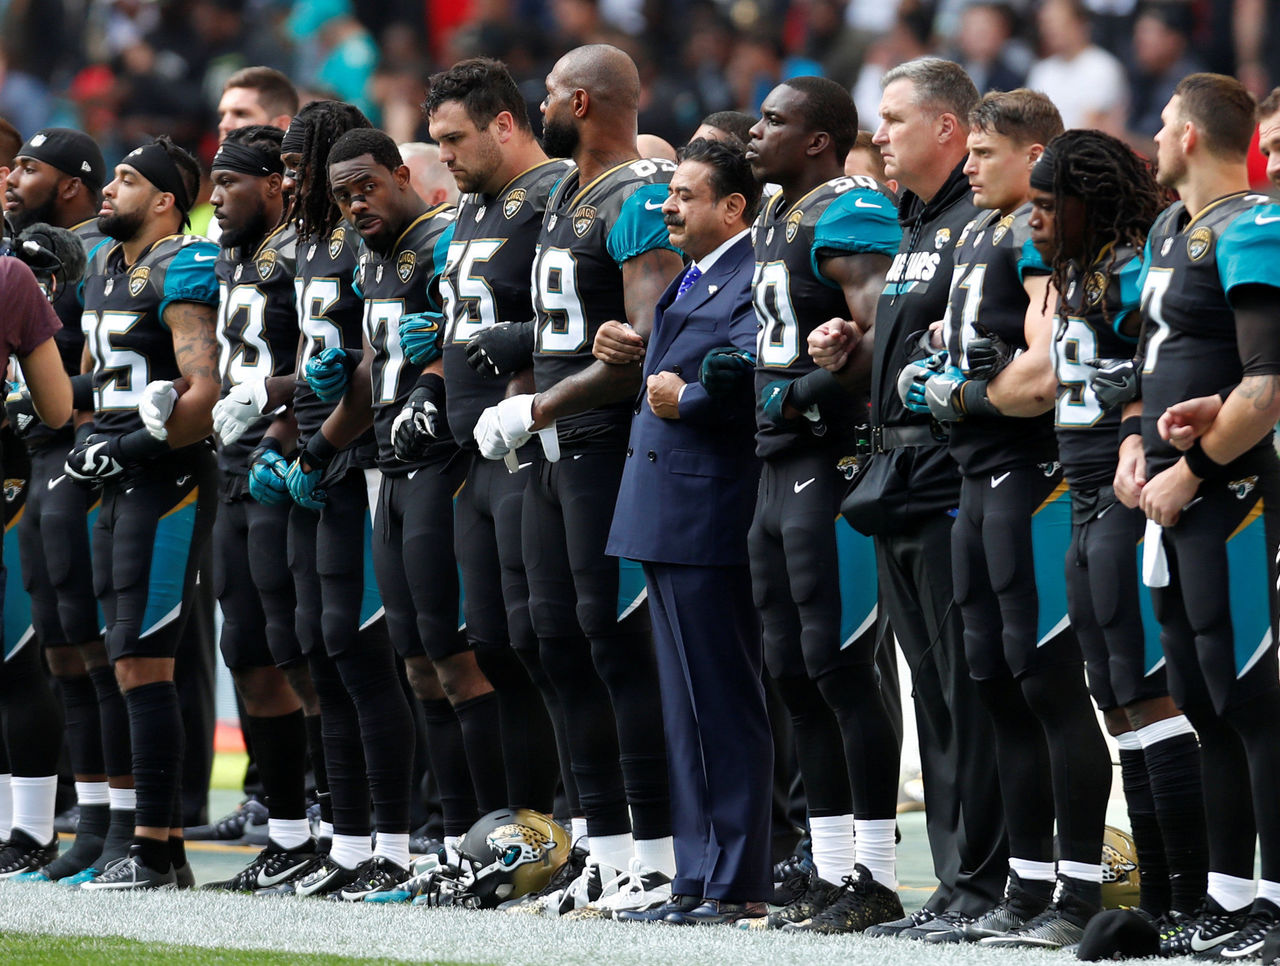 Jaguars release statement announcing intention to stand for anthem